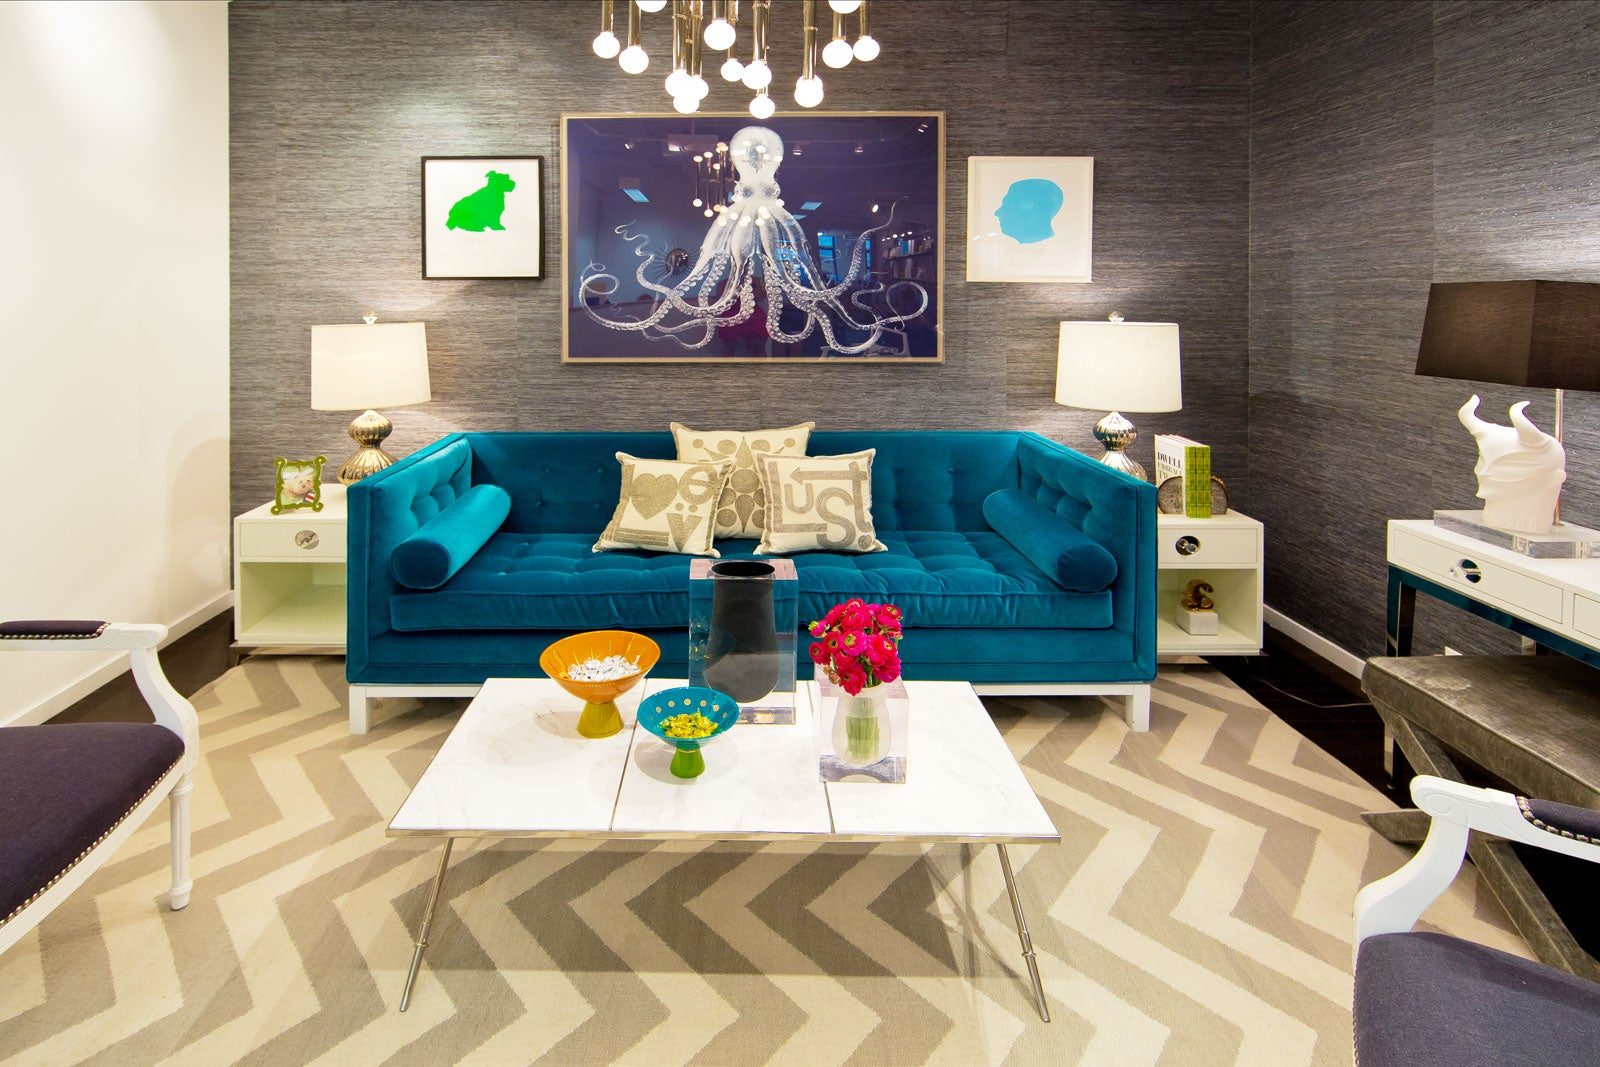 Jonathan Adler Studio Tour - Colorful Designer Office